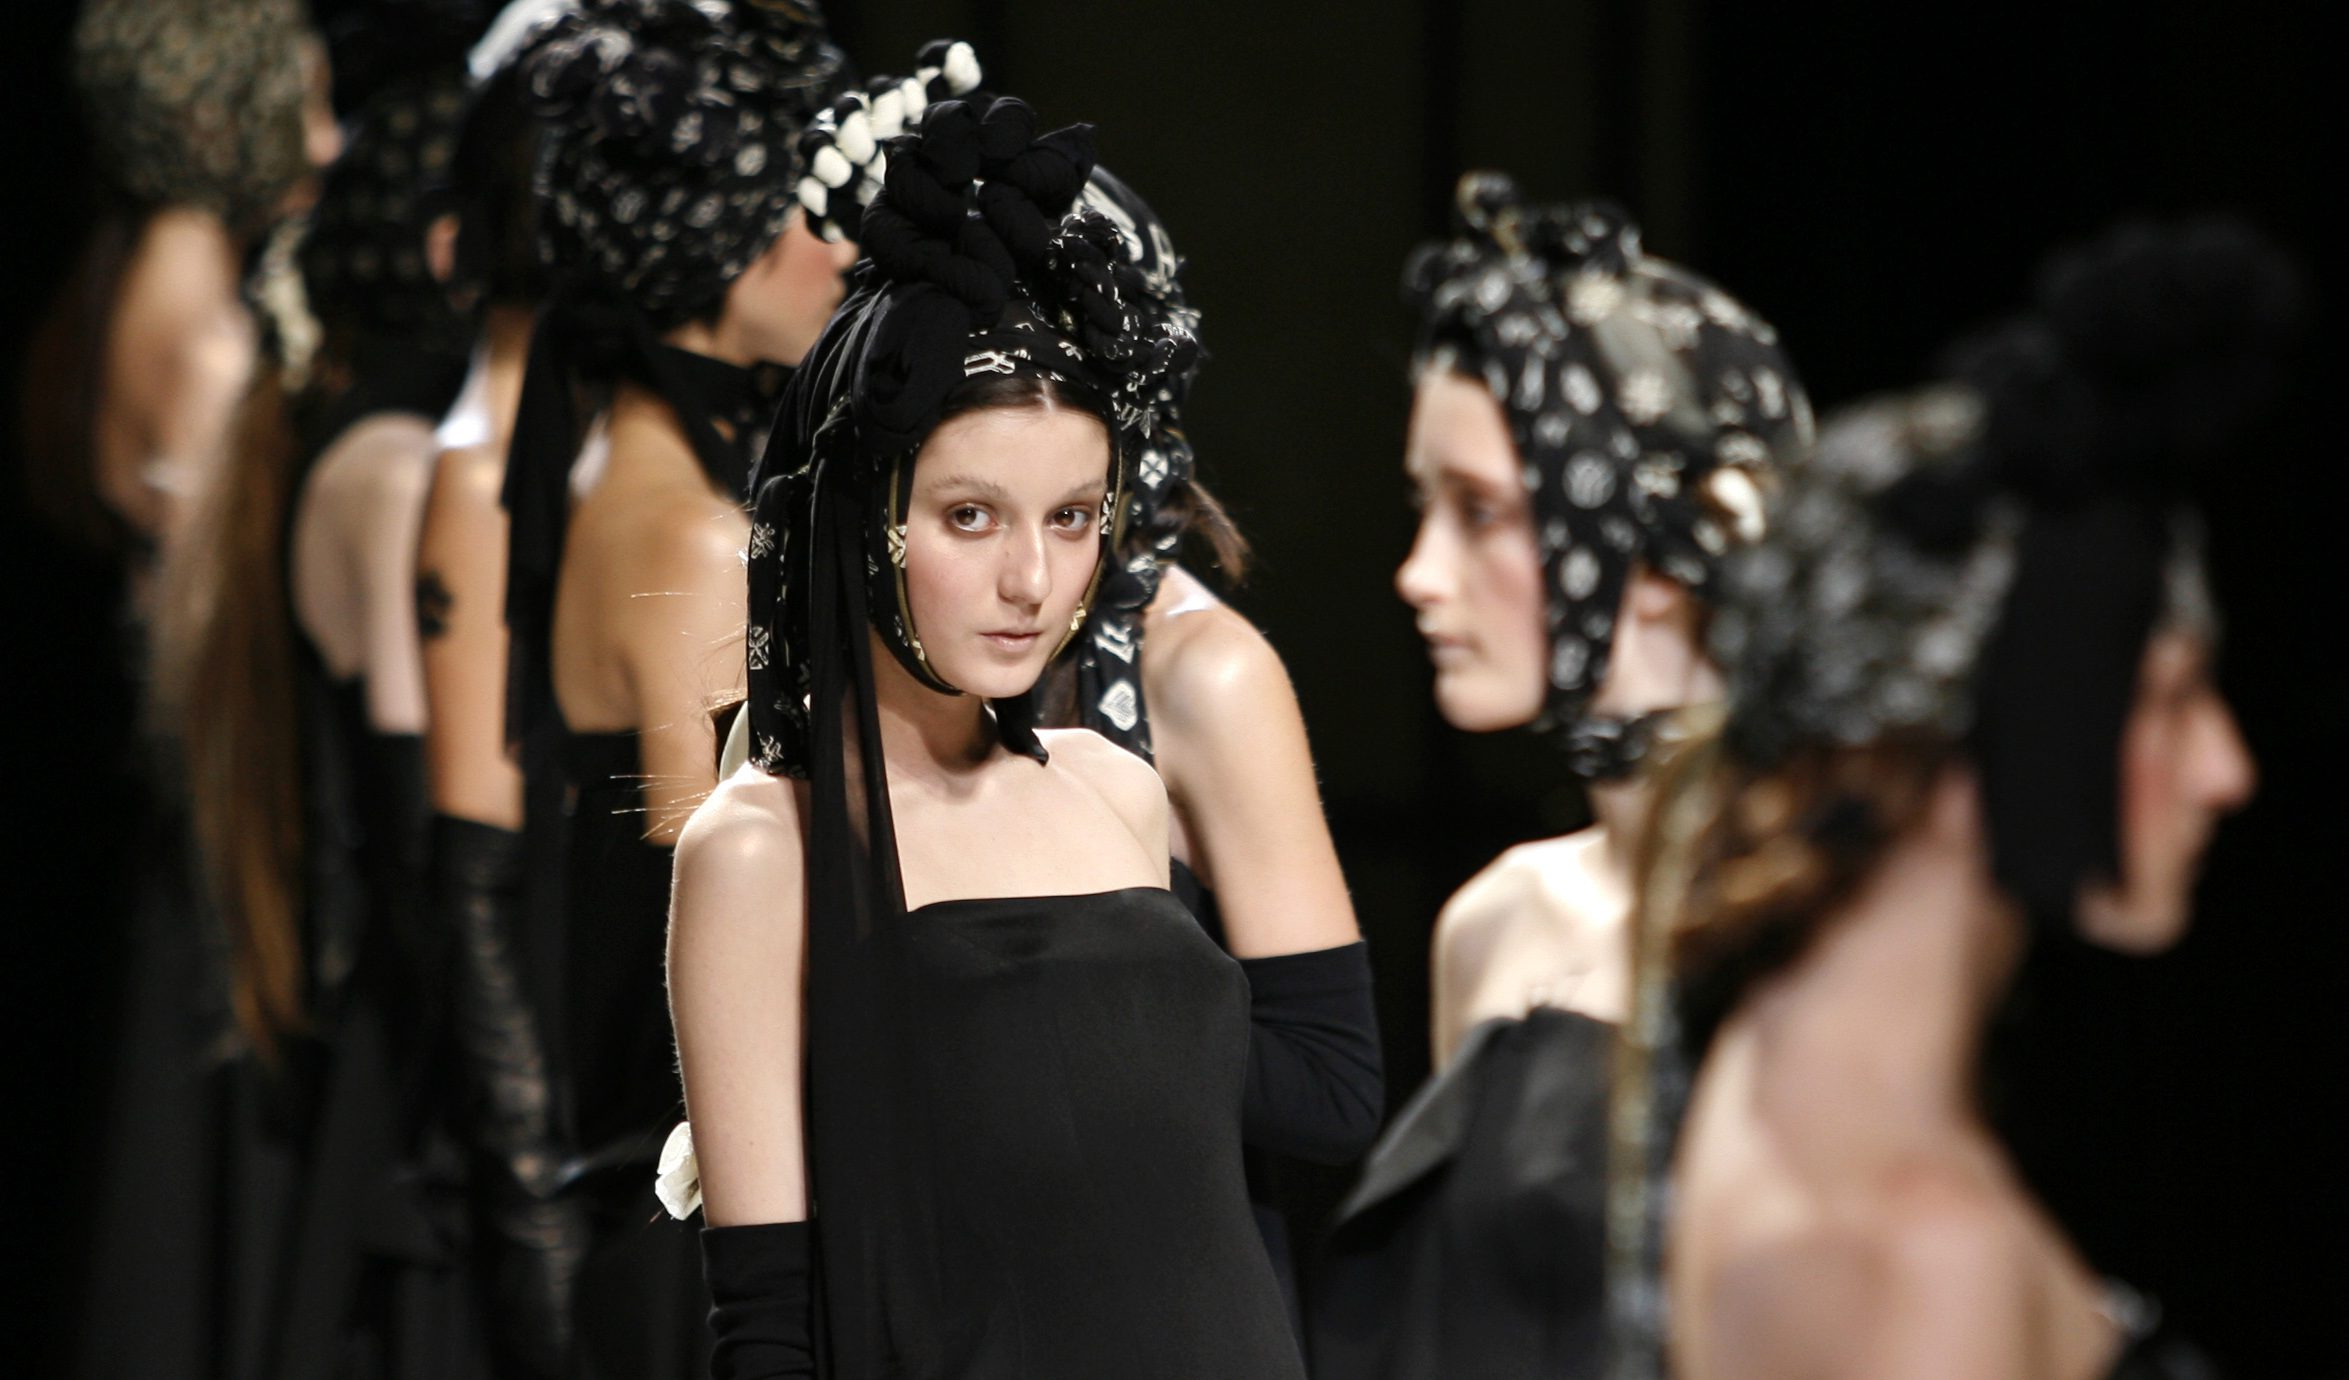 Models present creations by Japanese designer Yohji Yamamoto as part of the Autumn/Winter 2007/08 ready-to-wear fashion collection in Paris February 26, 2007. REUTERS/Pascal Rossignol (FRANCE) - GM1DURVTQYAA